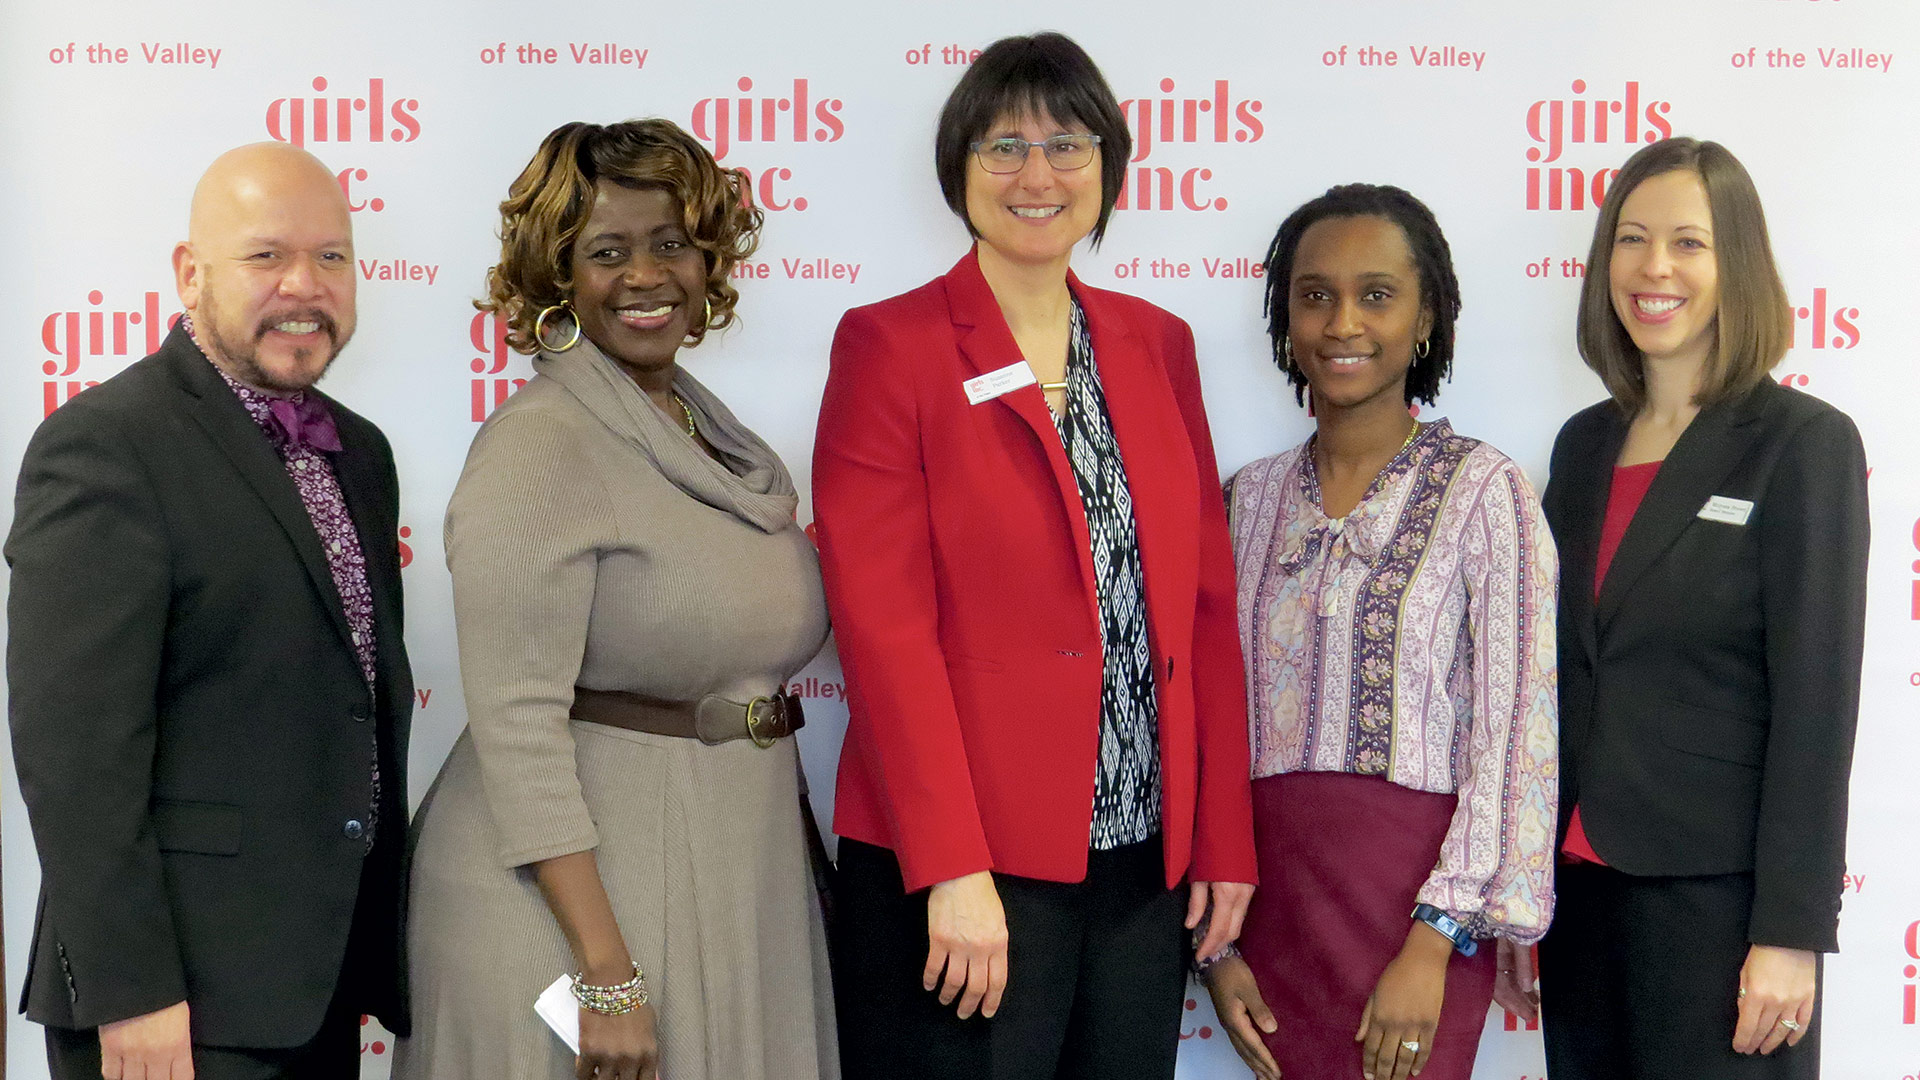 From left, Luis Soria, principal of the Marcella R. Kelly School in Holyoke; Safiatu Sam, mother of a Girls Inc. Eureka scholar who lives in Chicopee; Suzanne Parker, executive director of Girls Inc. of the Valley; Roxanne Atterbury, a teacher at Rebecca Johnson Elementary School in Springfield; and Melyssa Brown-Porter, chair of the board for Girls Inc. of the Valley.